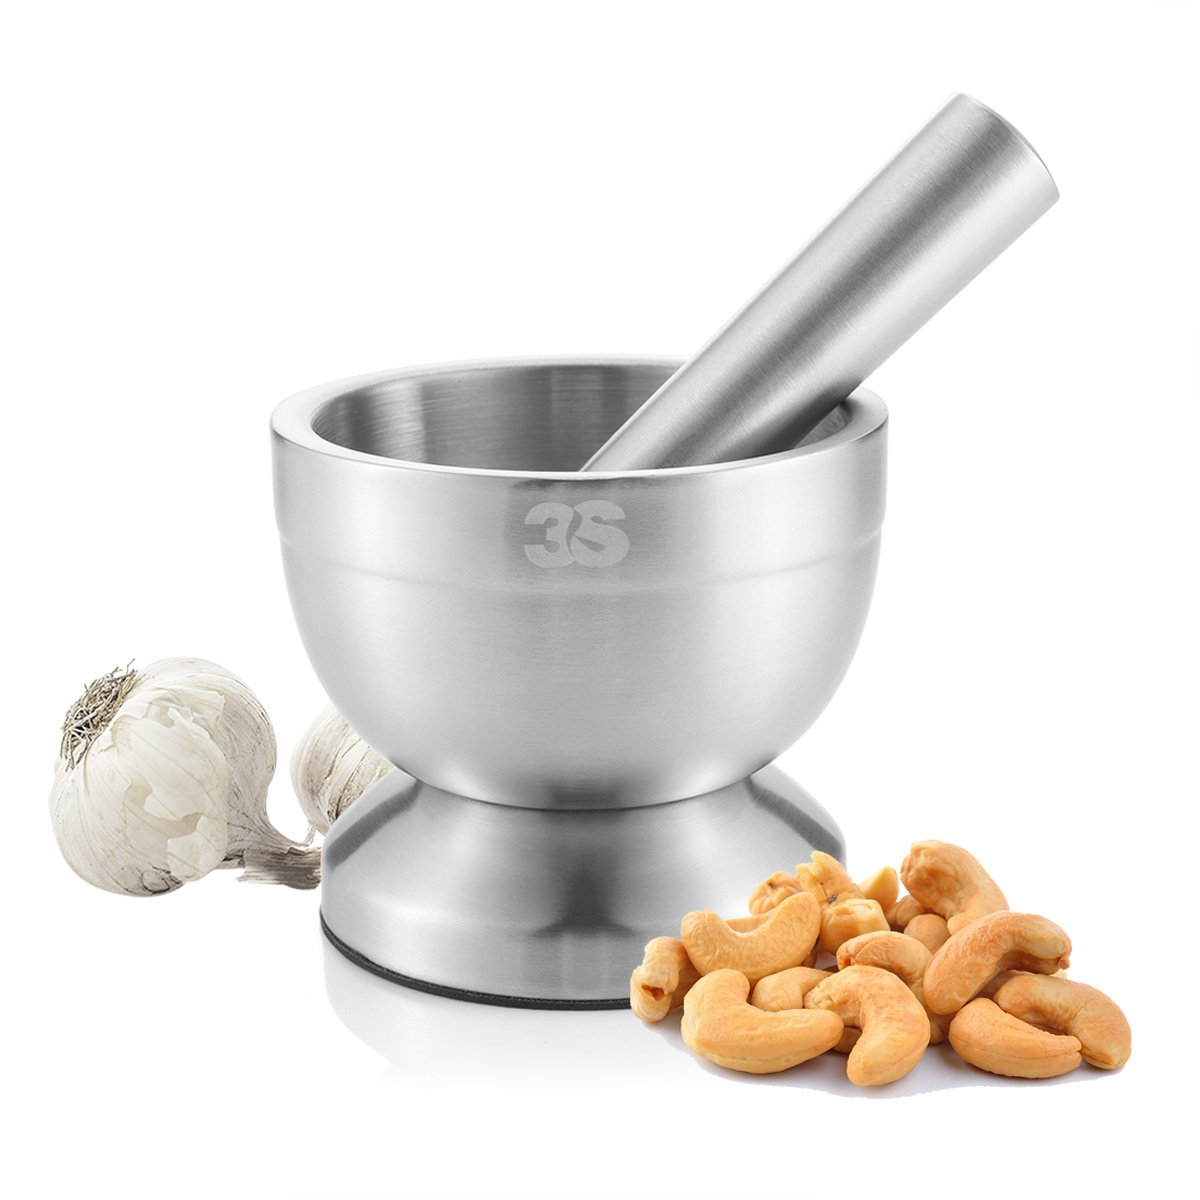 3s stainless steel spice grinder/mortar and pestle set